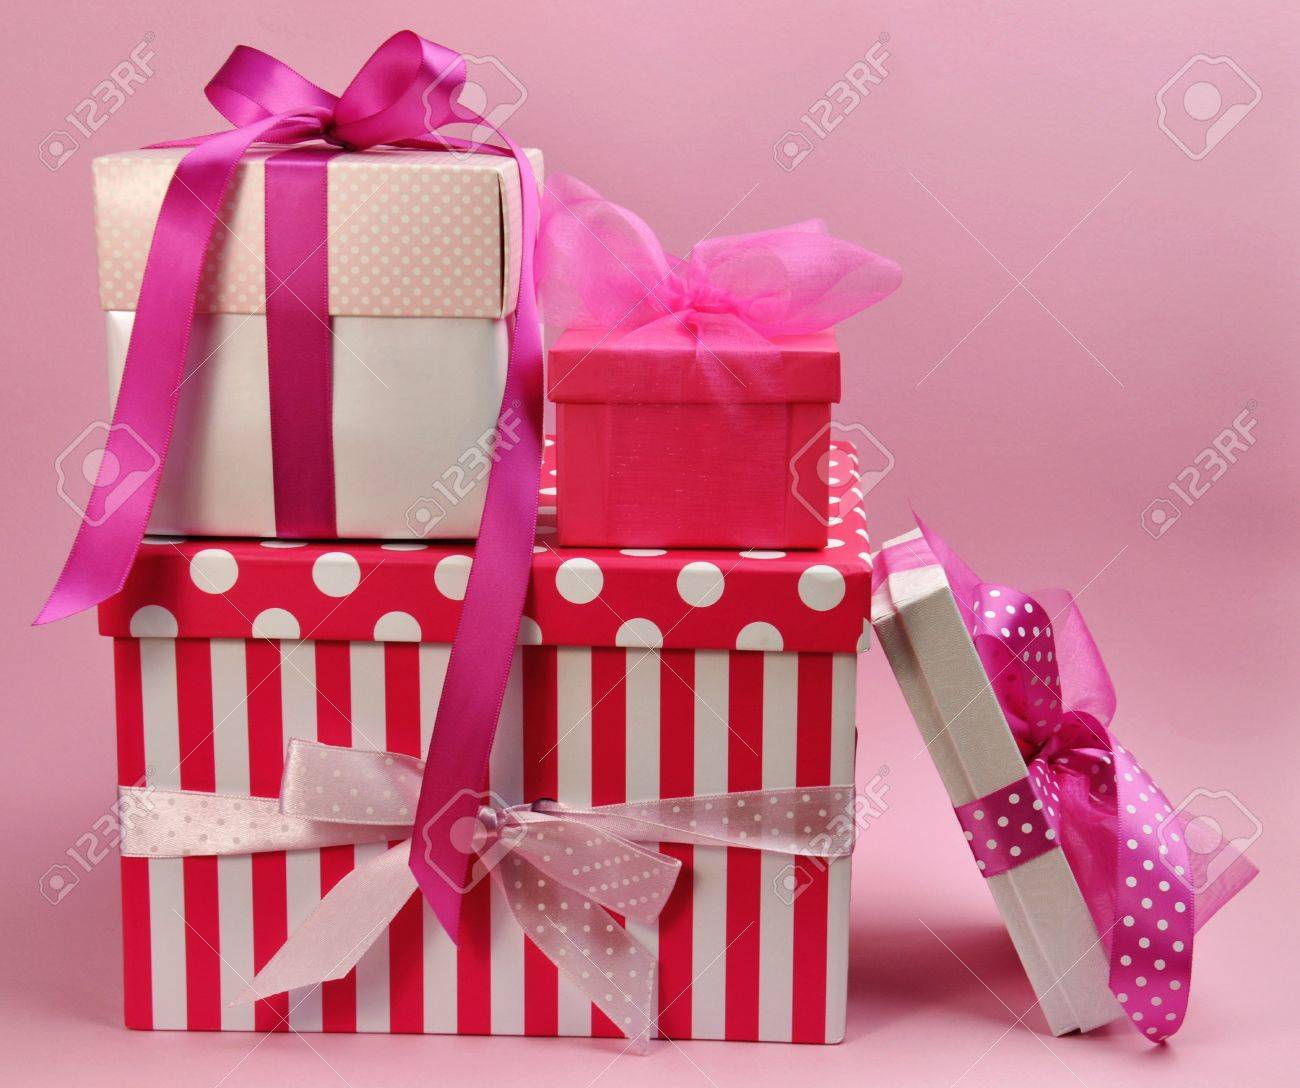 Stack Of Pretty Feminine Pink Presents And Gifts With Ribbons.. Stock Photo, Picture And Royalty Free Image. Image 16803358.